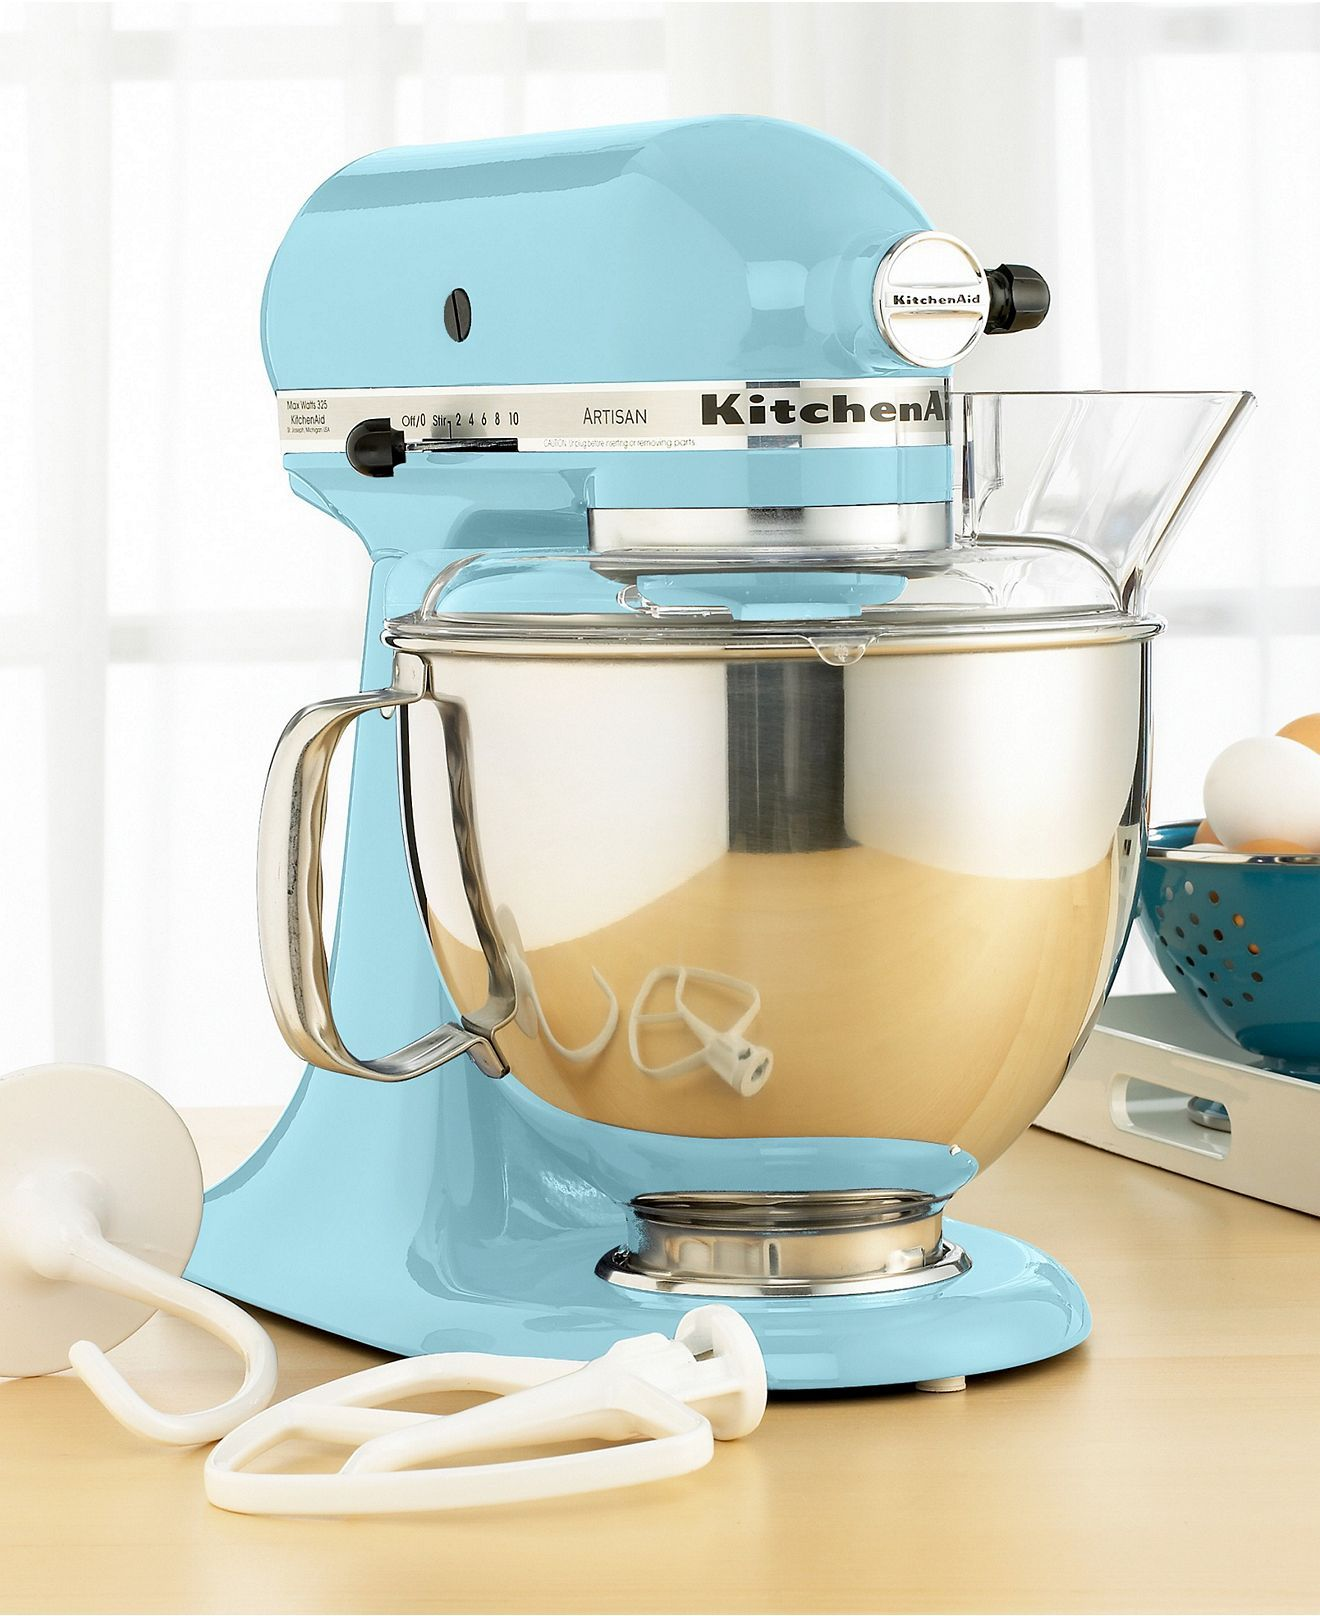 KitchenAid KSM150PS Artisan 5 Qt. Stand Mixer | KitchenAid, Stand ...